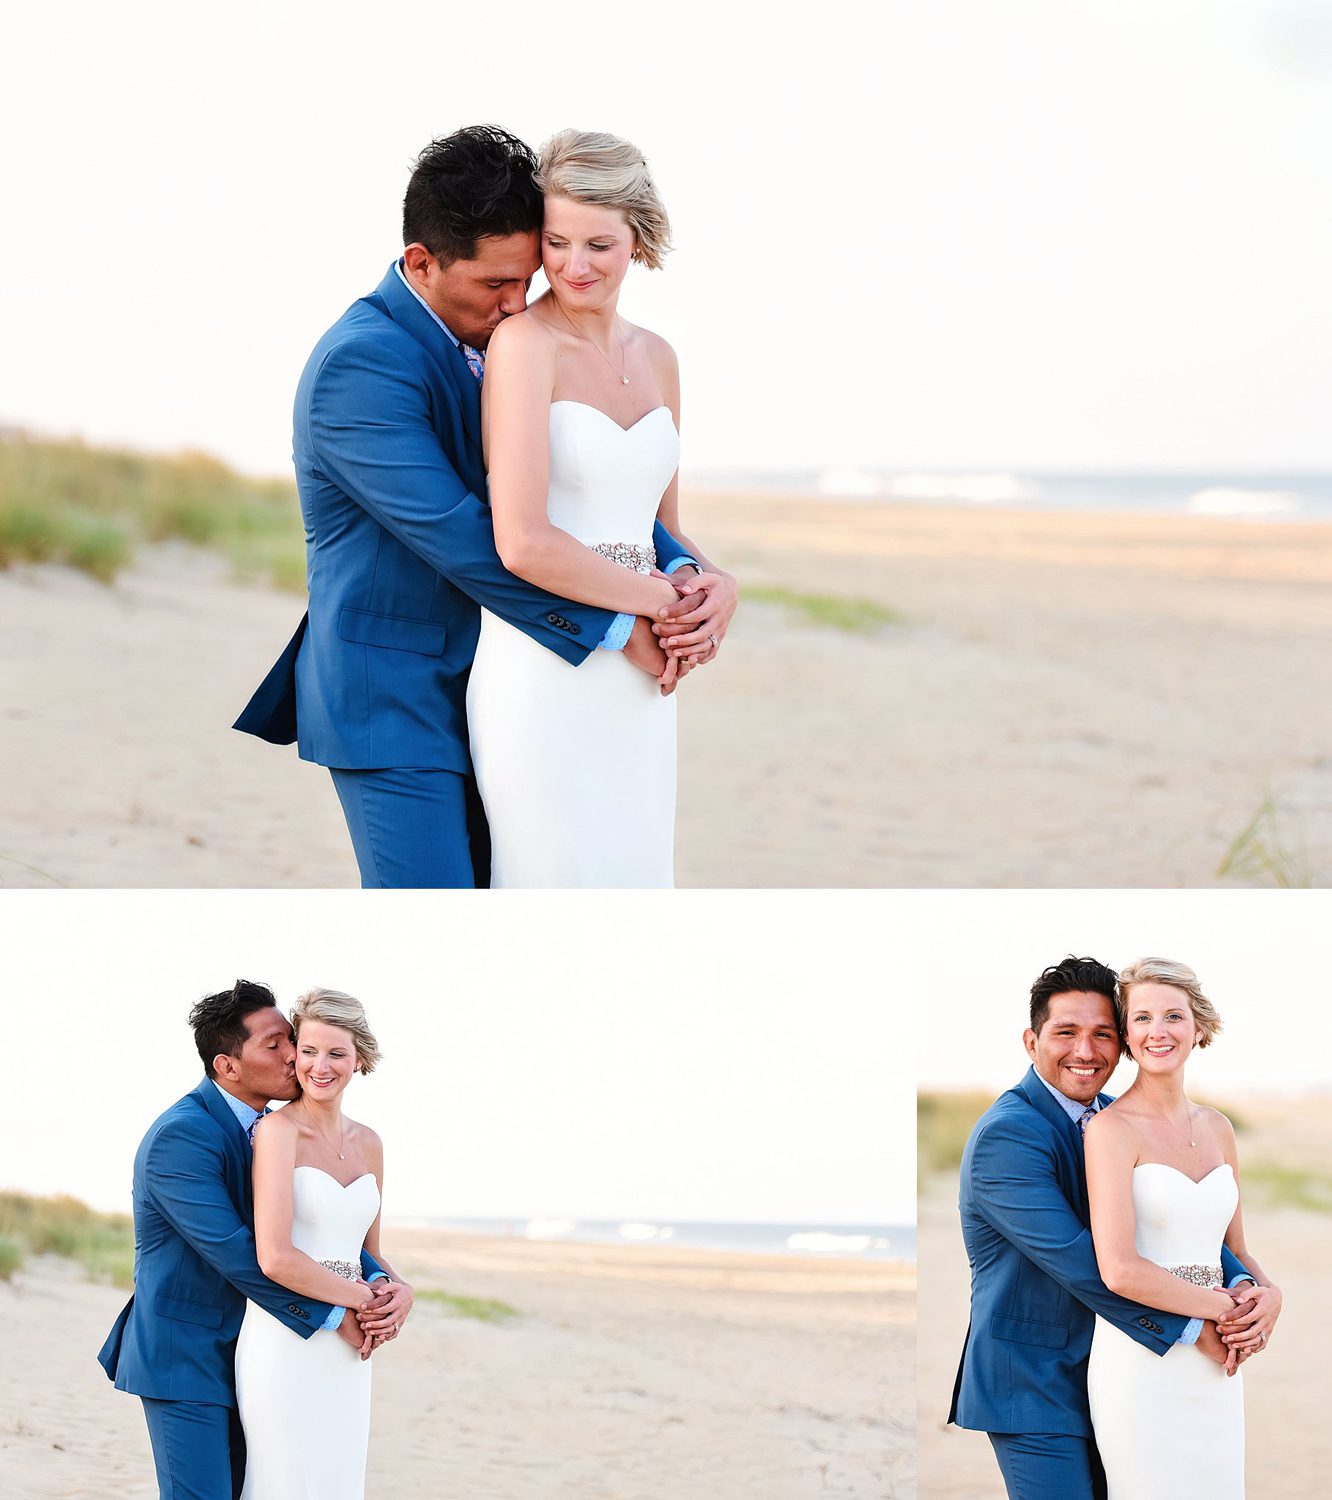 intimate-bride-and-groom-photos-virginia-beach-wedding-photographer-melissa-bliss-photography.jpg